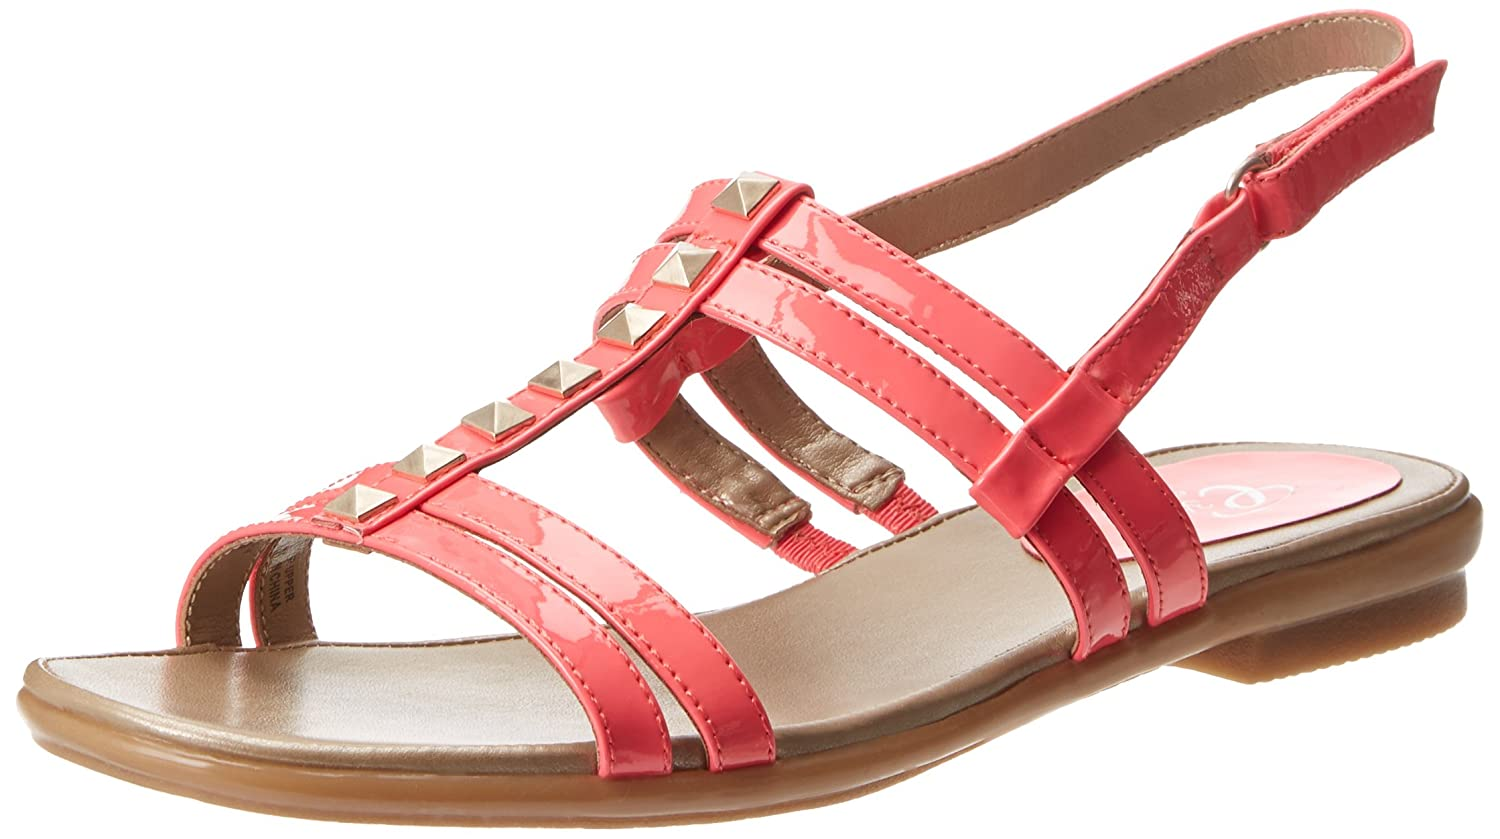 Easy Spirit Women's Karessa Gladiator Sandal B00HRIQ9Y4 7.5 B(M) US|Medium Red Patent